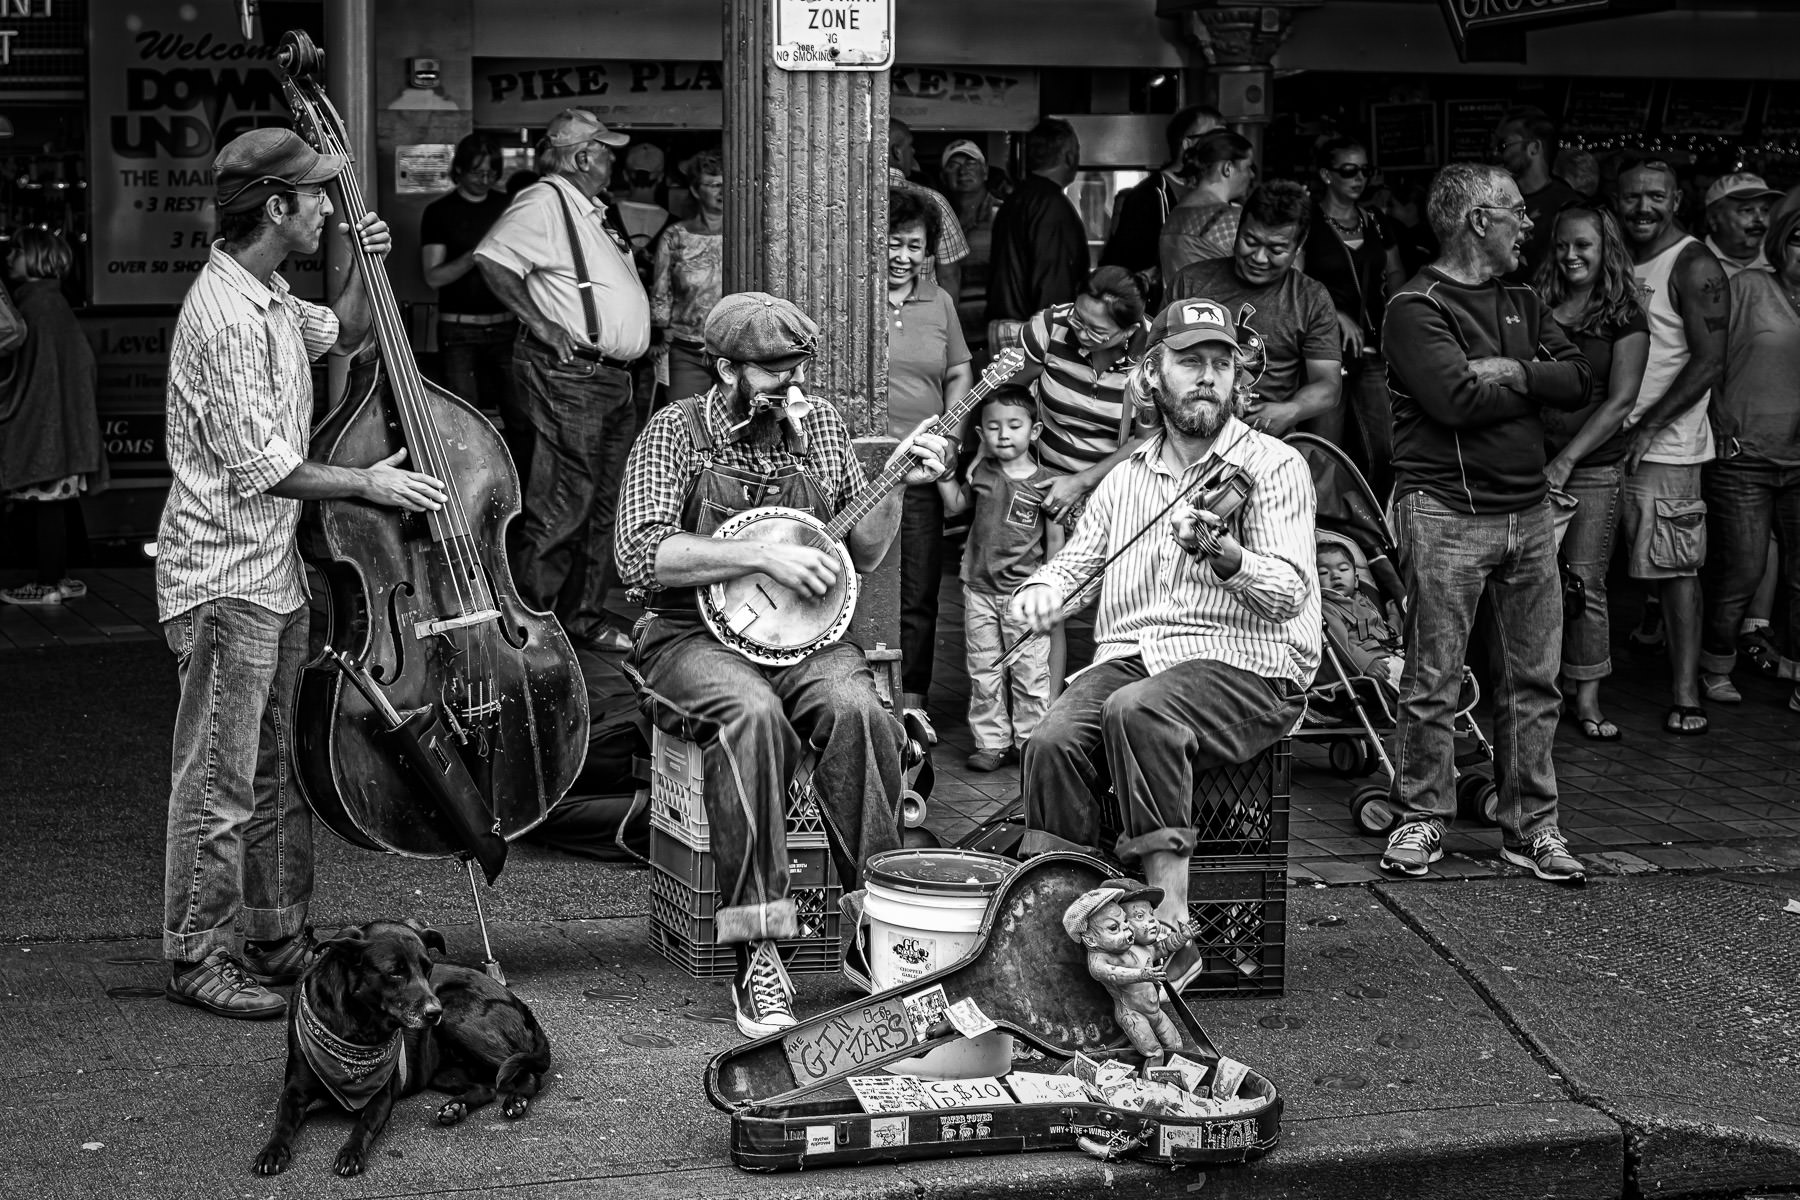 Blues & Jazz trio The Gin Jars busk for tips at Seattle's Pike Place Market.